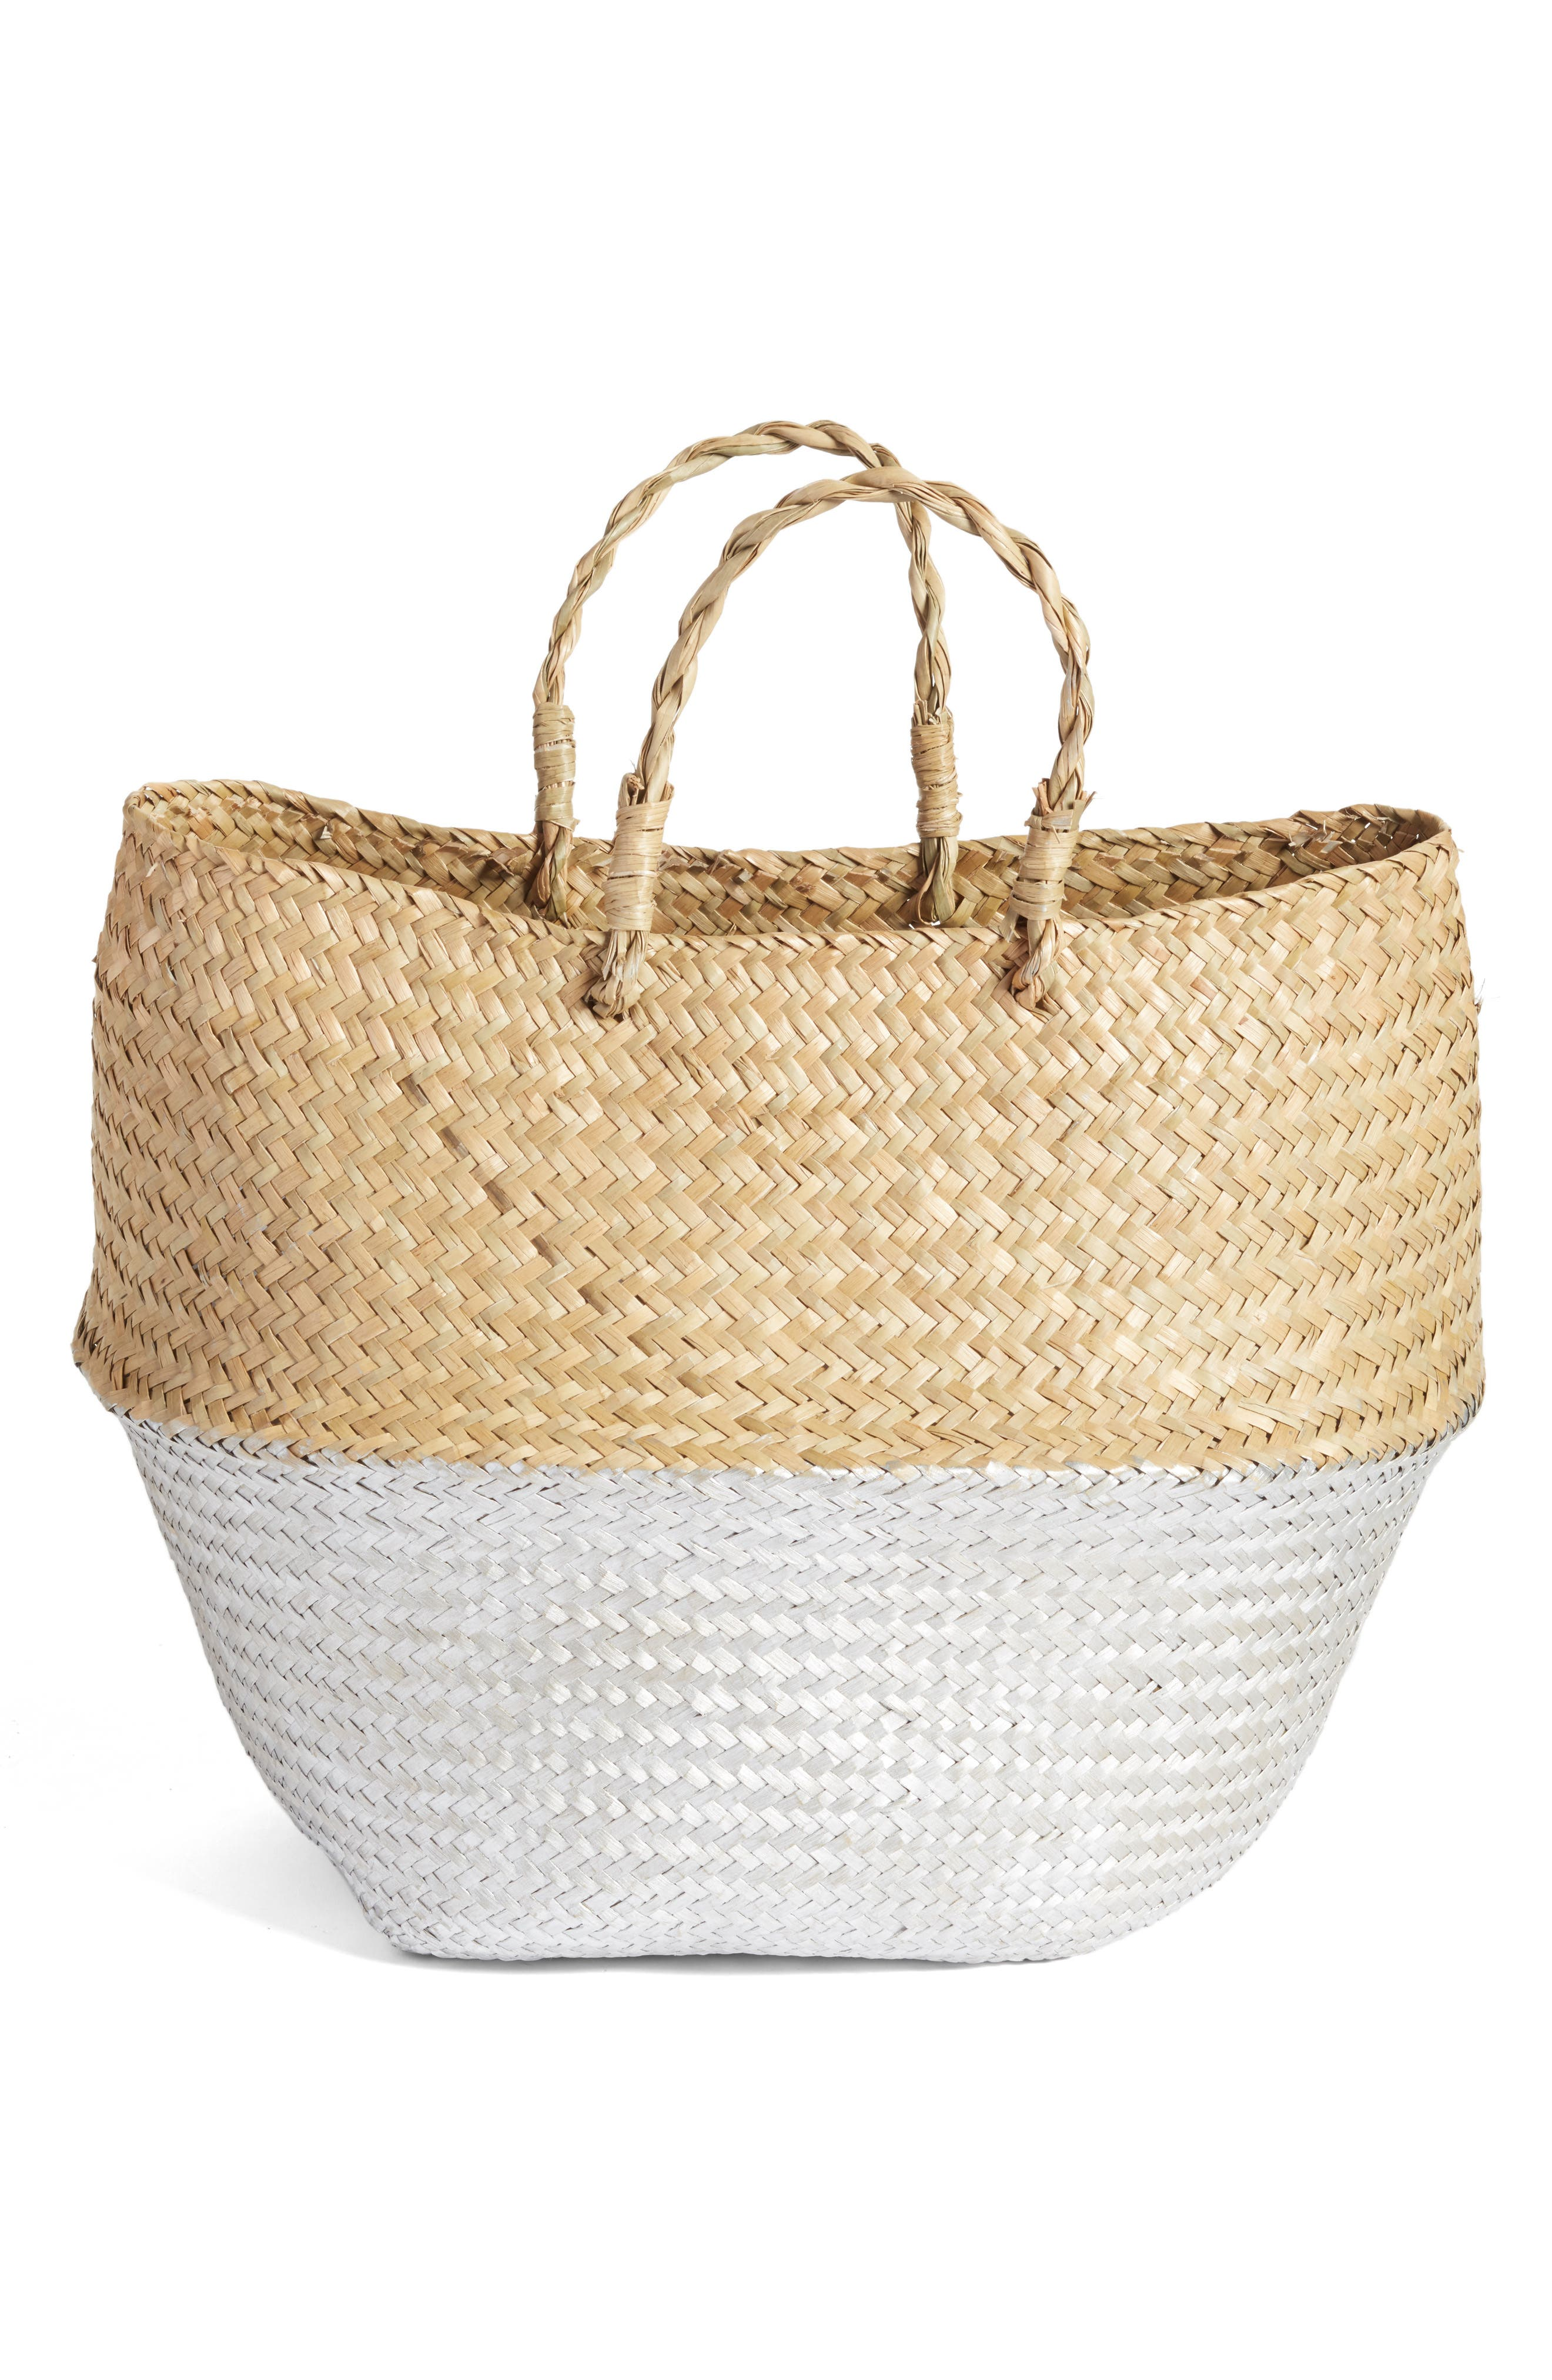 Main Image - Levtex Two-Tone Metallic Straw Basket